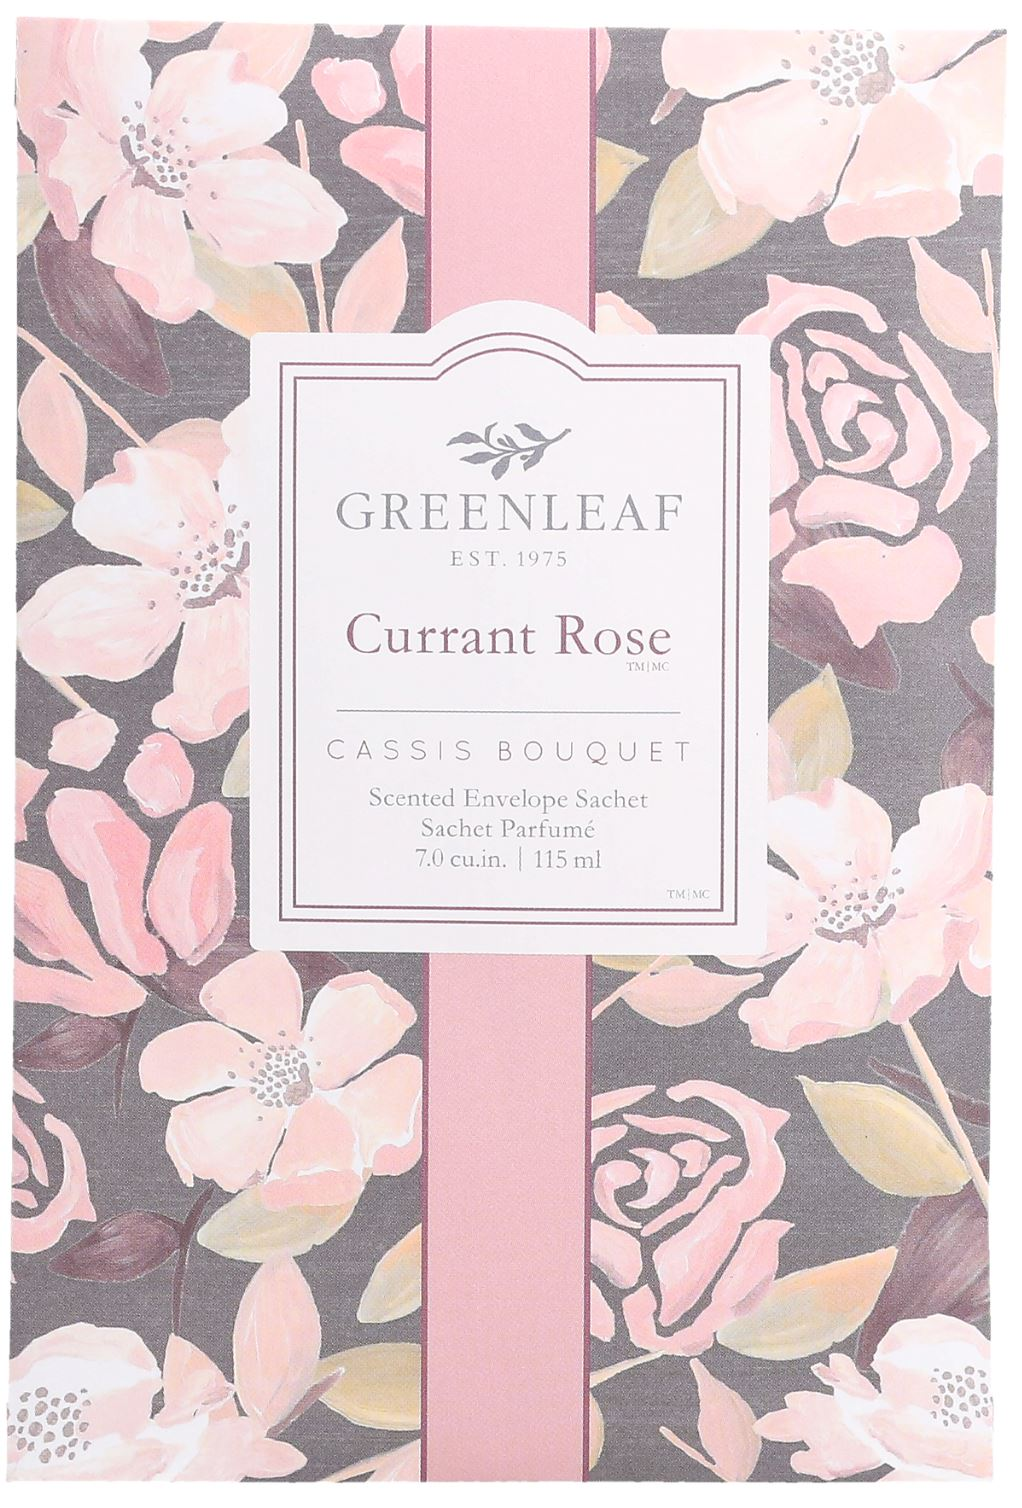 Duftsachet / Currant Rose